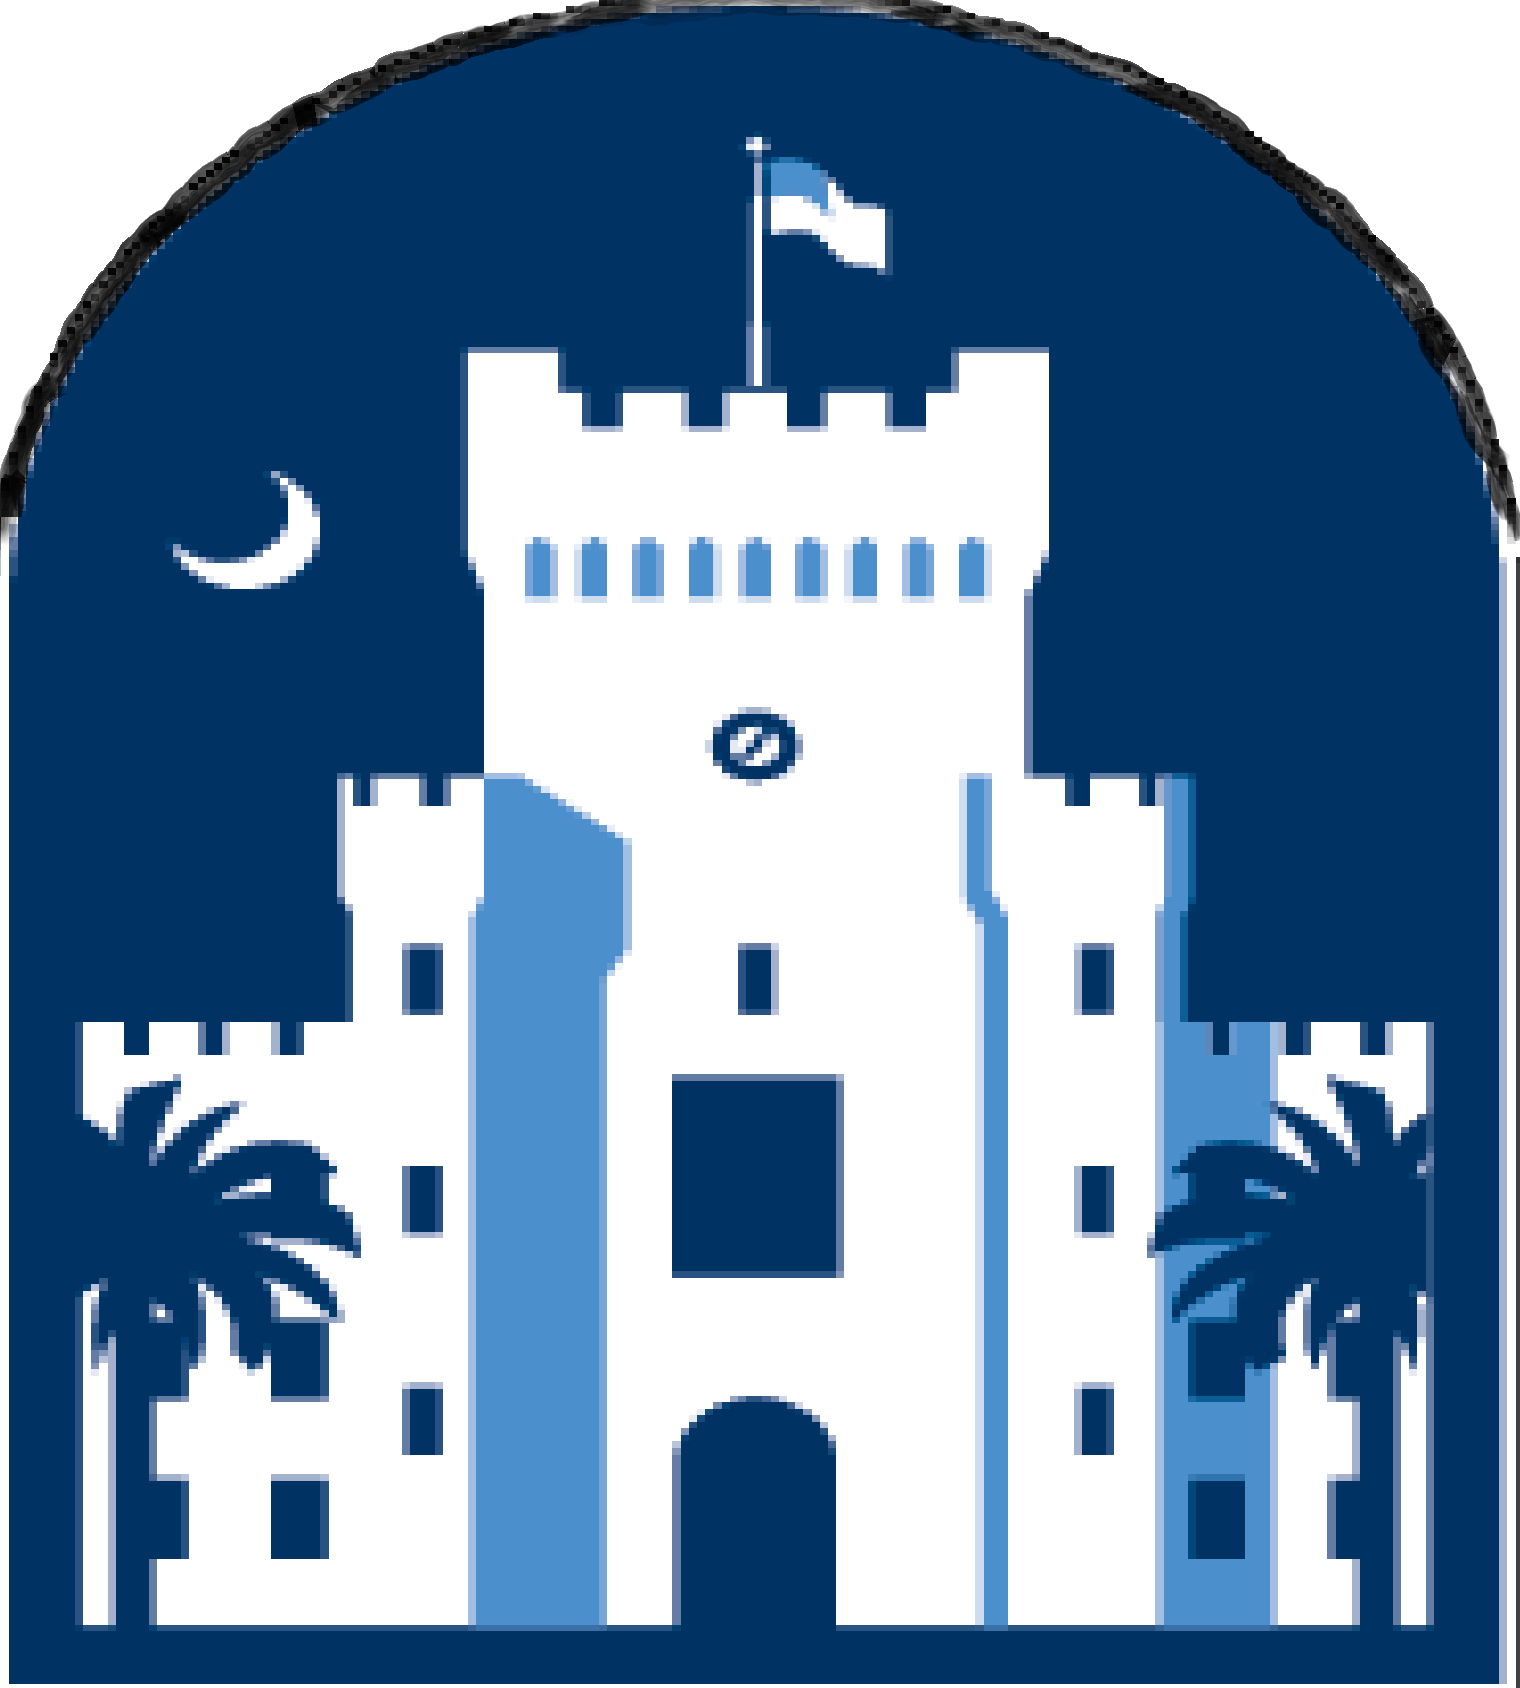 Citadel cadet clipart picture freeuse library Citadel Military College of South Carolina | Overview | Plexuss.com picture freeuse library